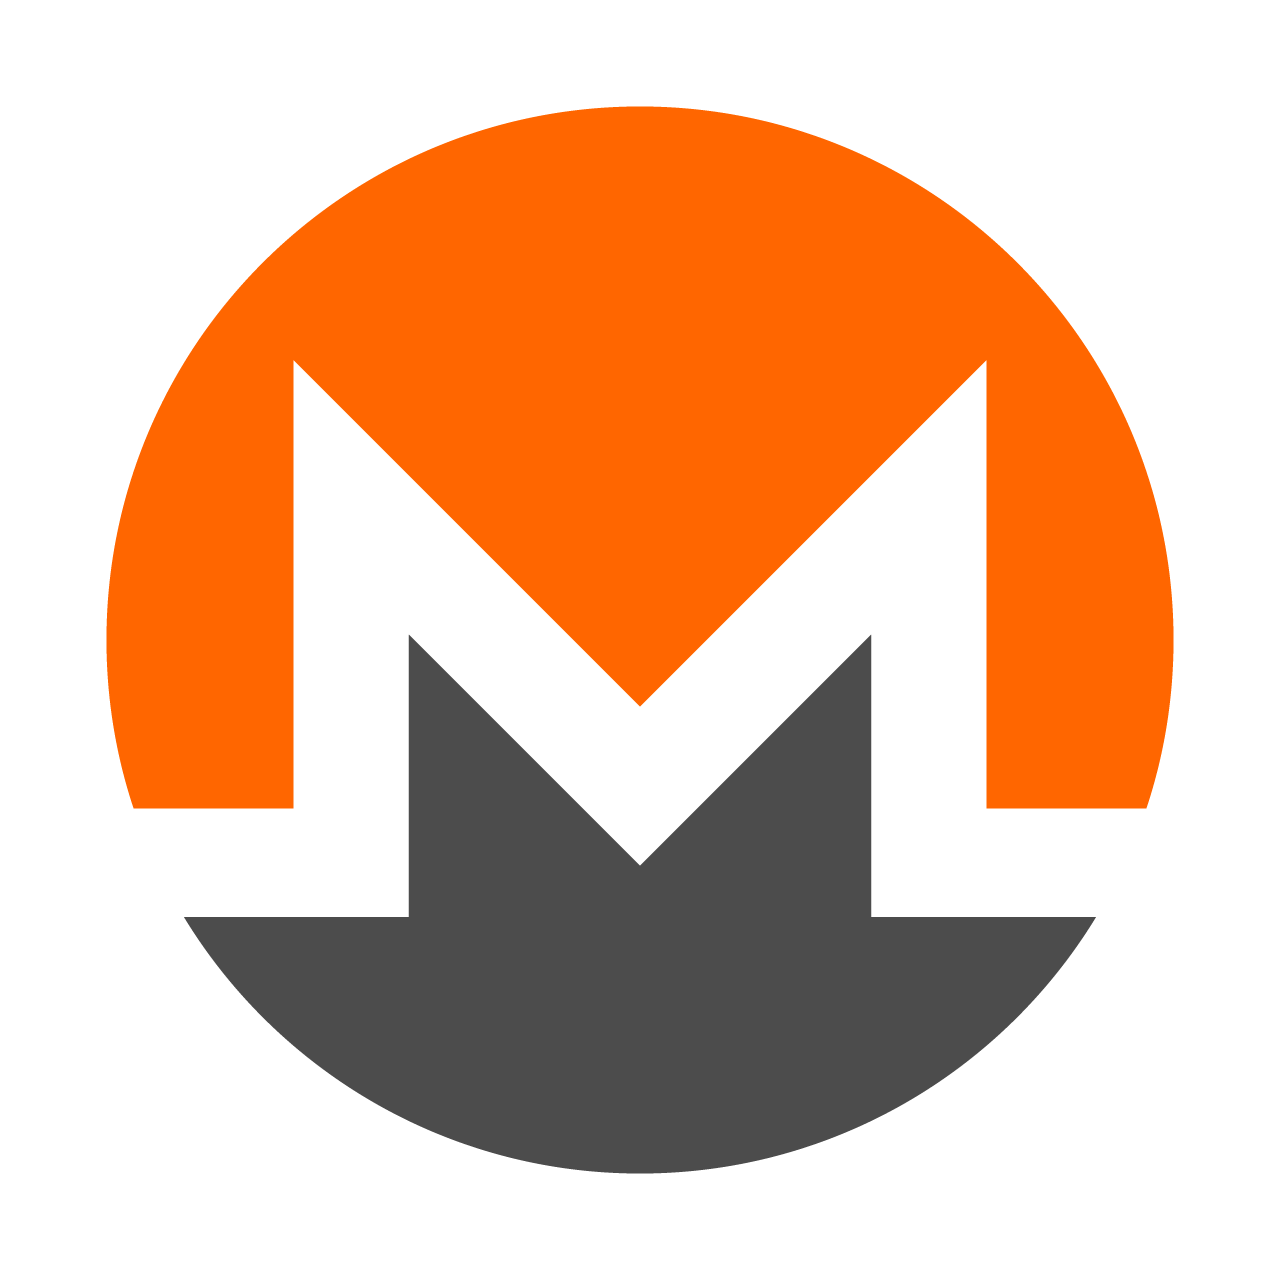 press-kit/symbols/monero-symbol-1280.png